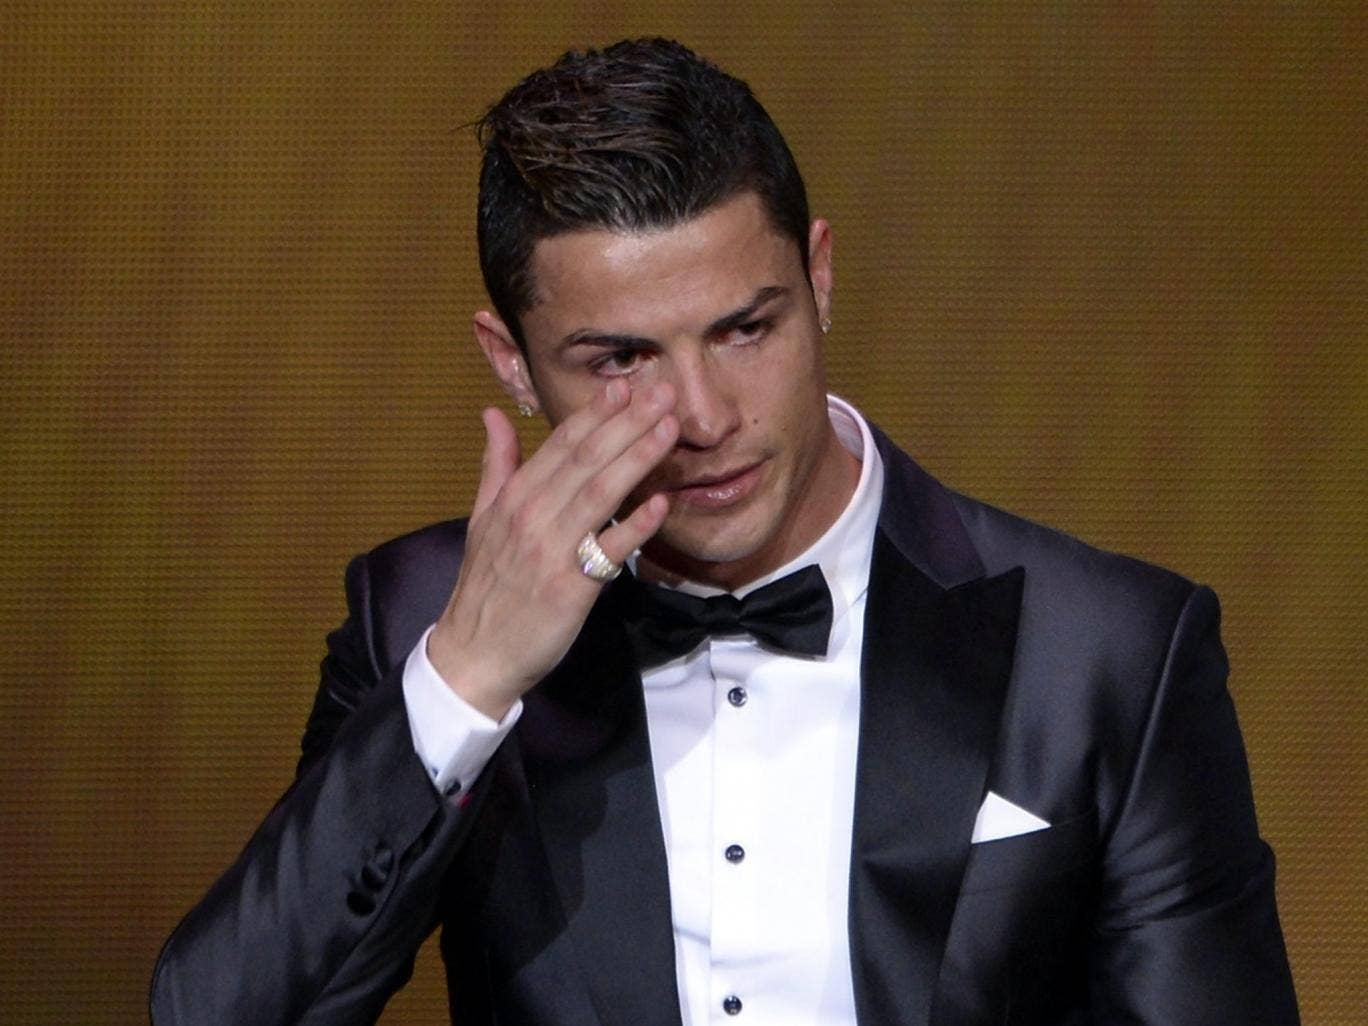 Cristiano Ronaldo fights back tears after winning the Fifa Ballon d'Or award